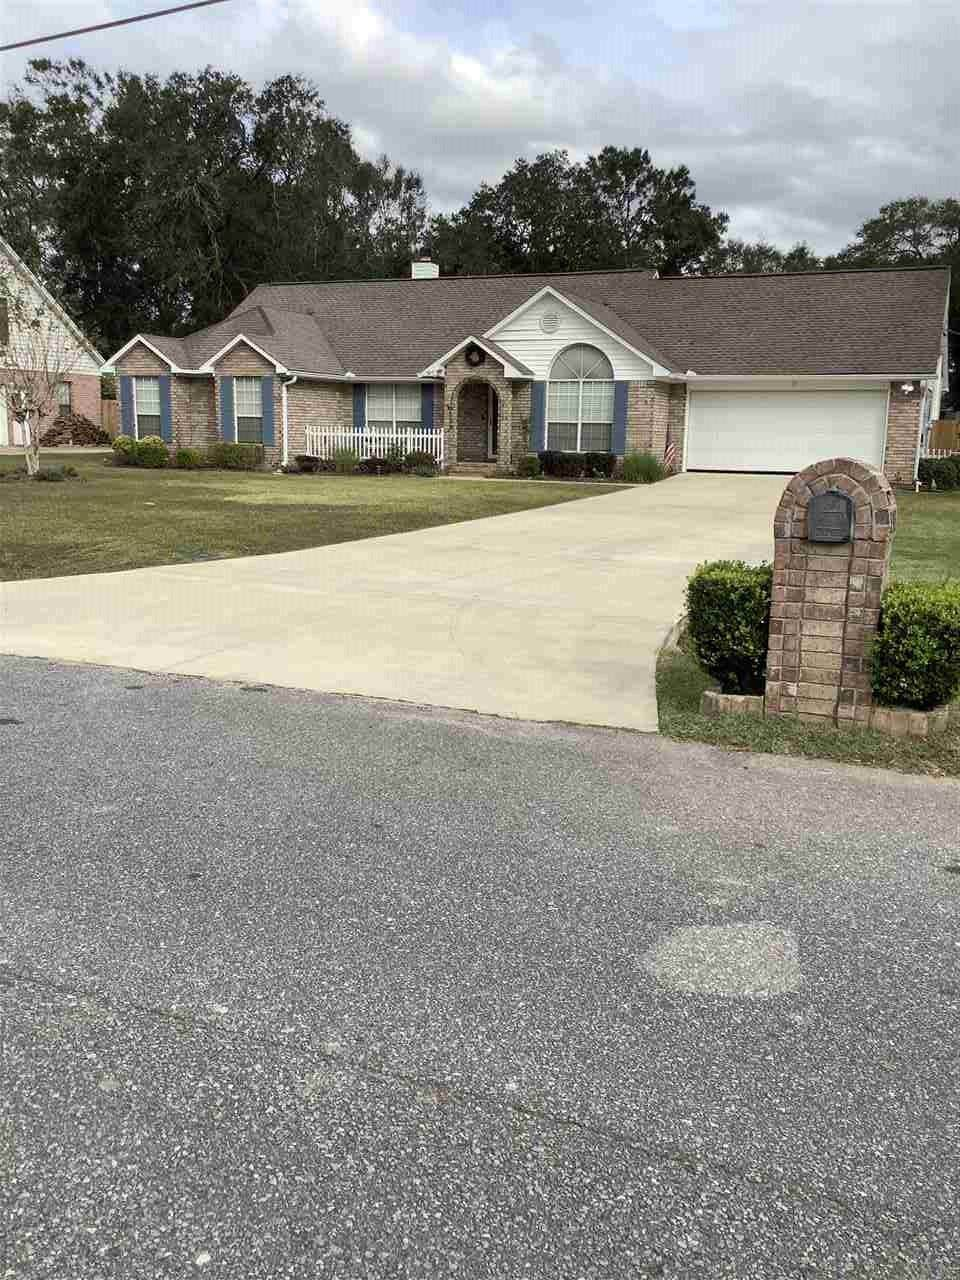 5305 Rowe Trl, Pace, FL 32571 (MLS #578997) :: Connell & Company Realty, Inc.